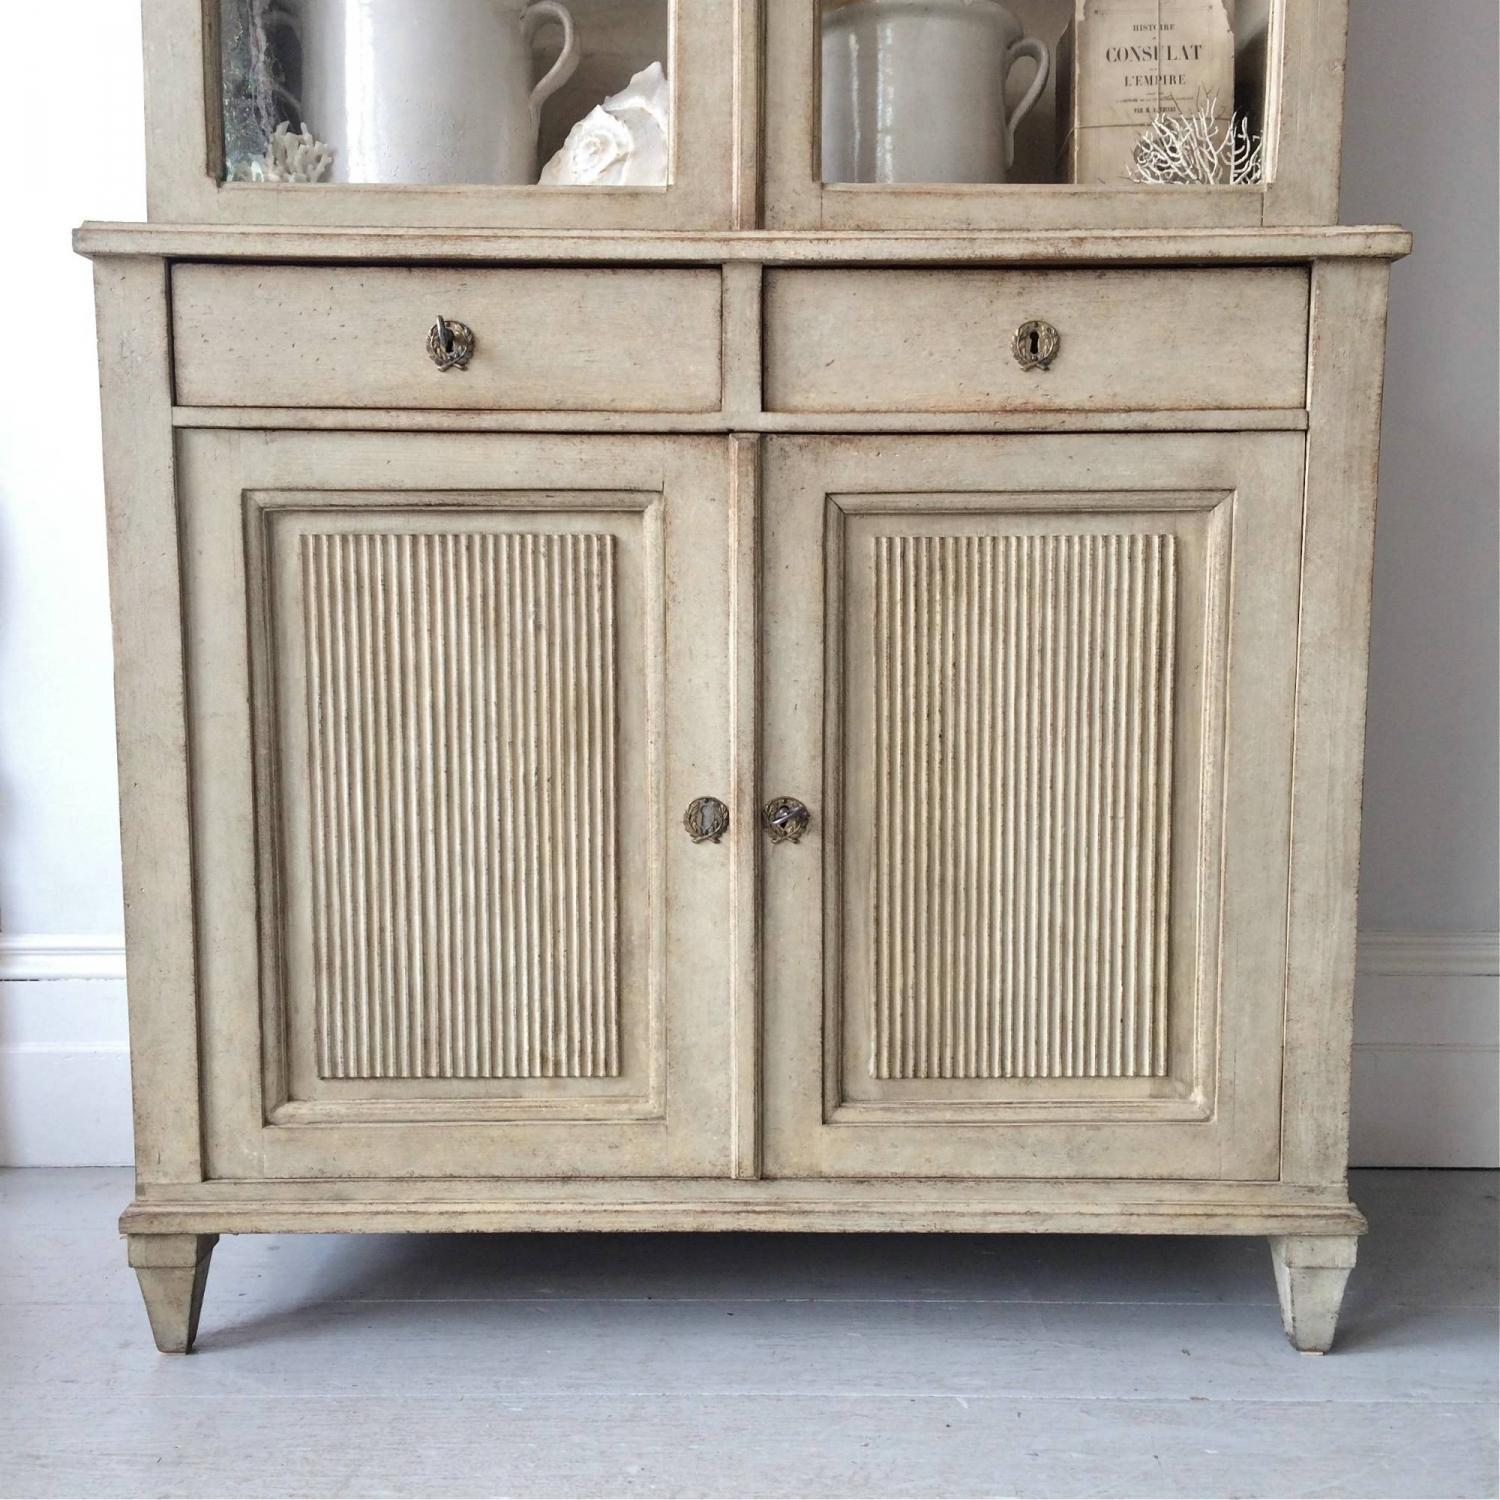 magnificent tall gustavian style vitrine cabinet in furniture - Gustavian Style Furniture